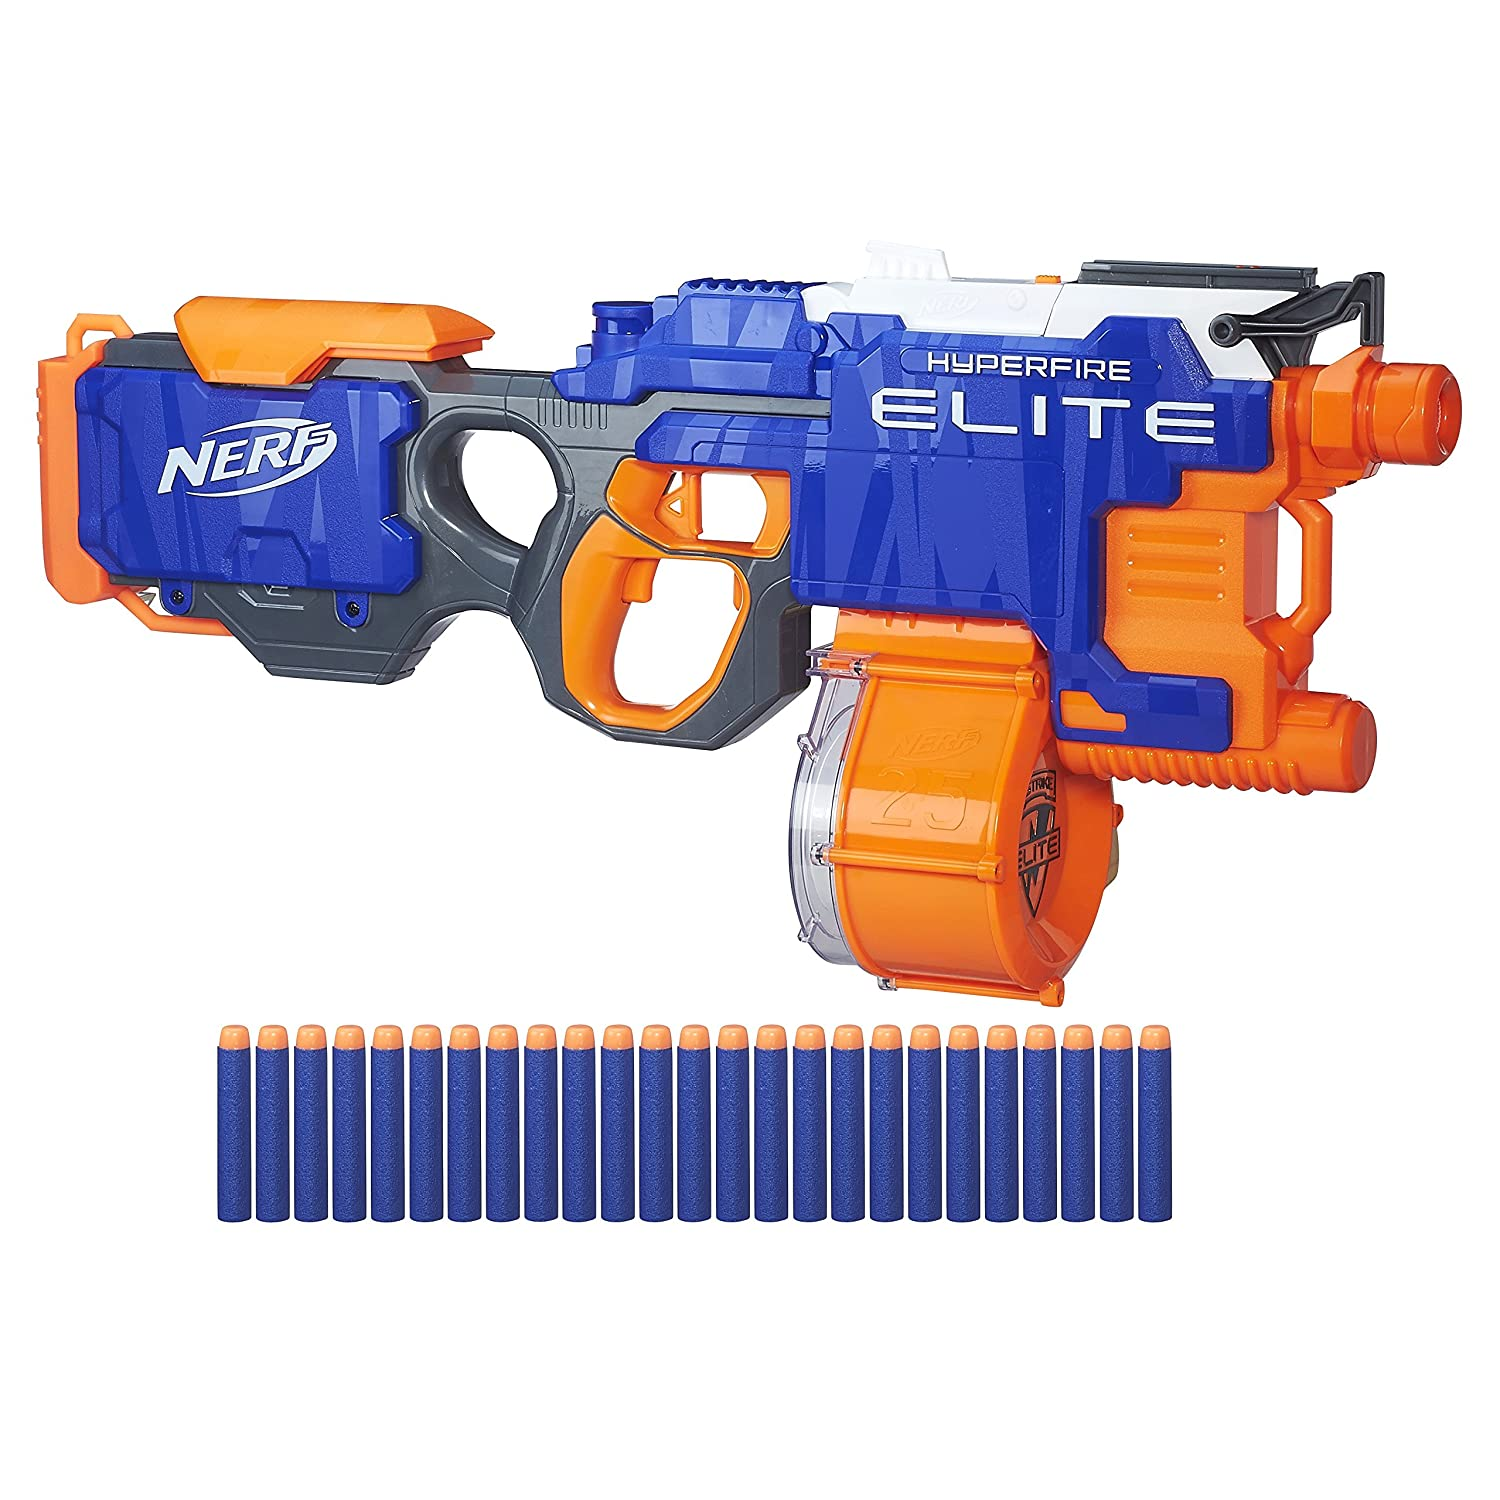 Nerf N-Strike Hyperfire Toy